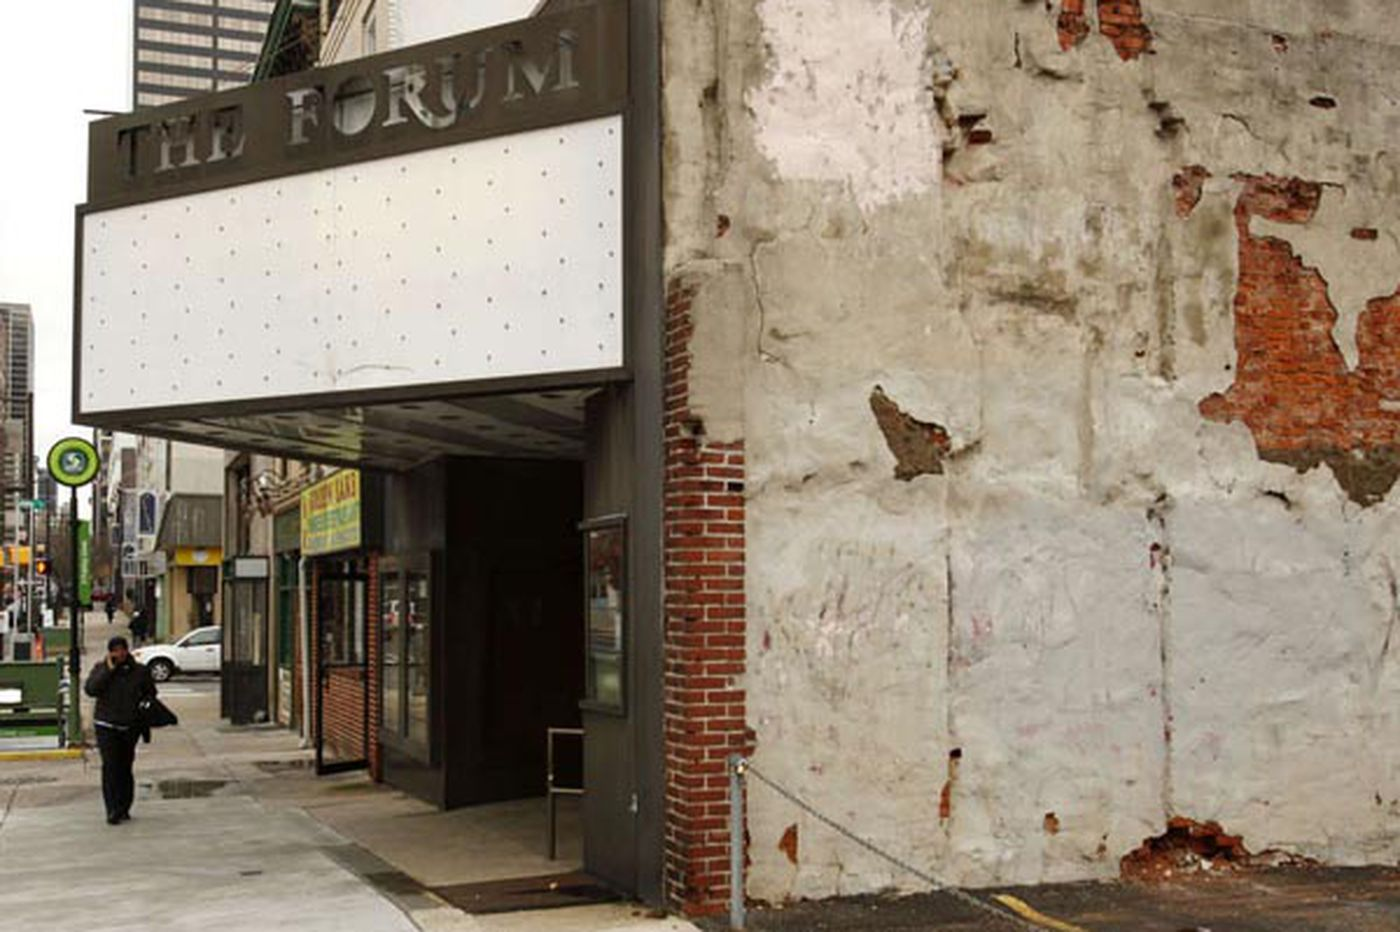 Parkway affiliate virtually controls block near former porn theater on W. Market